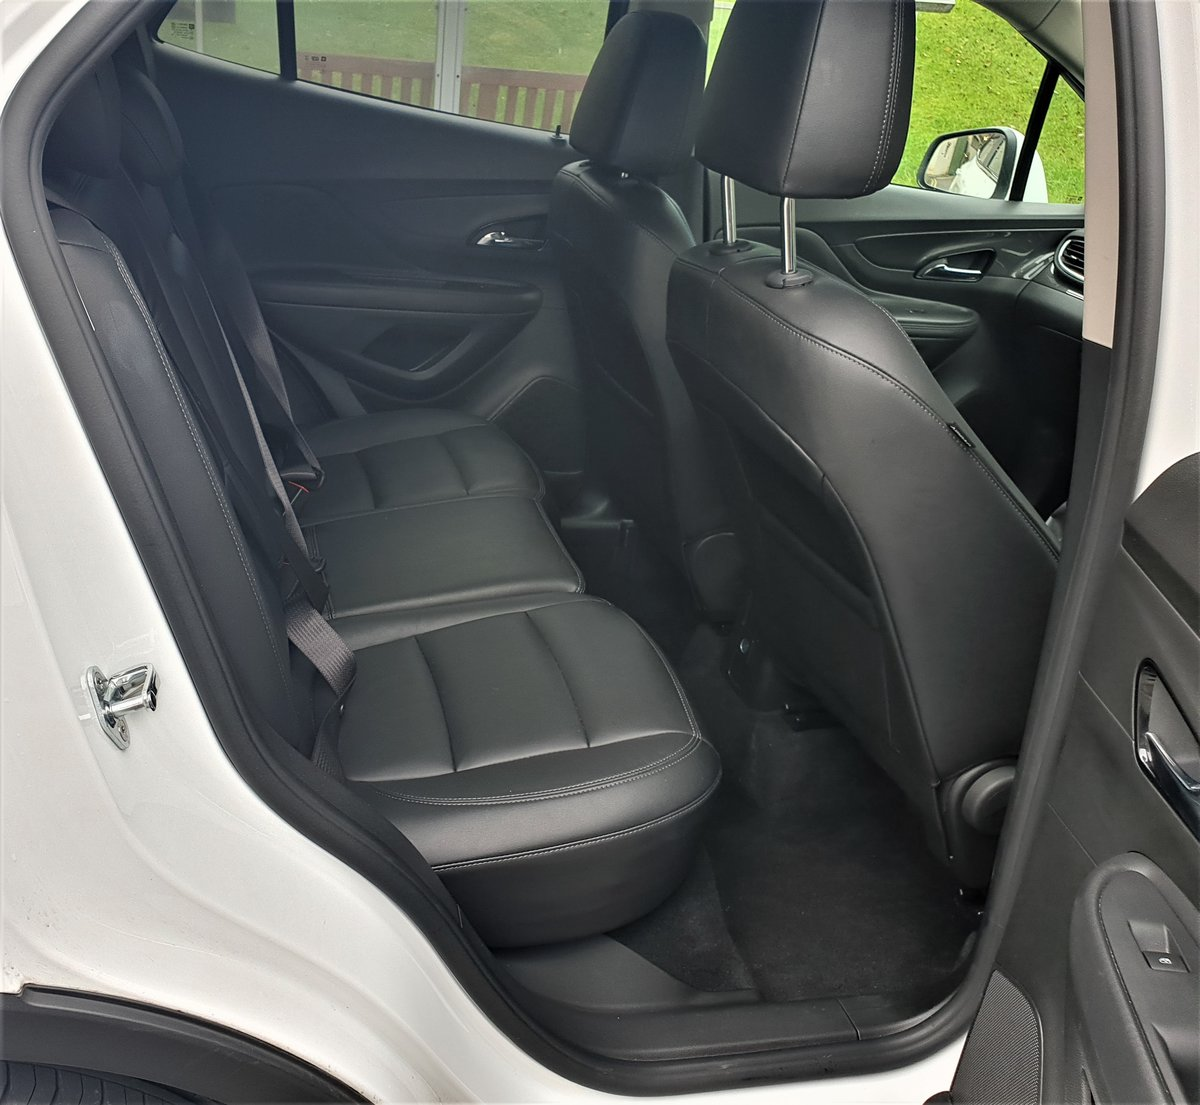 2018 VAUXHALL MOKKA X ELITE 1.4T TOP OF RANGE WITH ALL THE TOYS For Sale (picture 5 of 6)